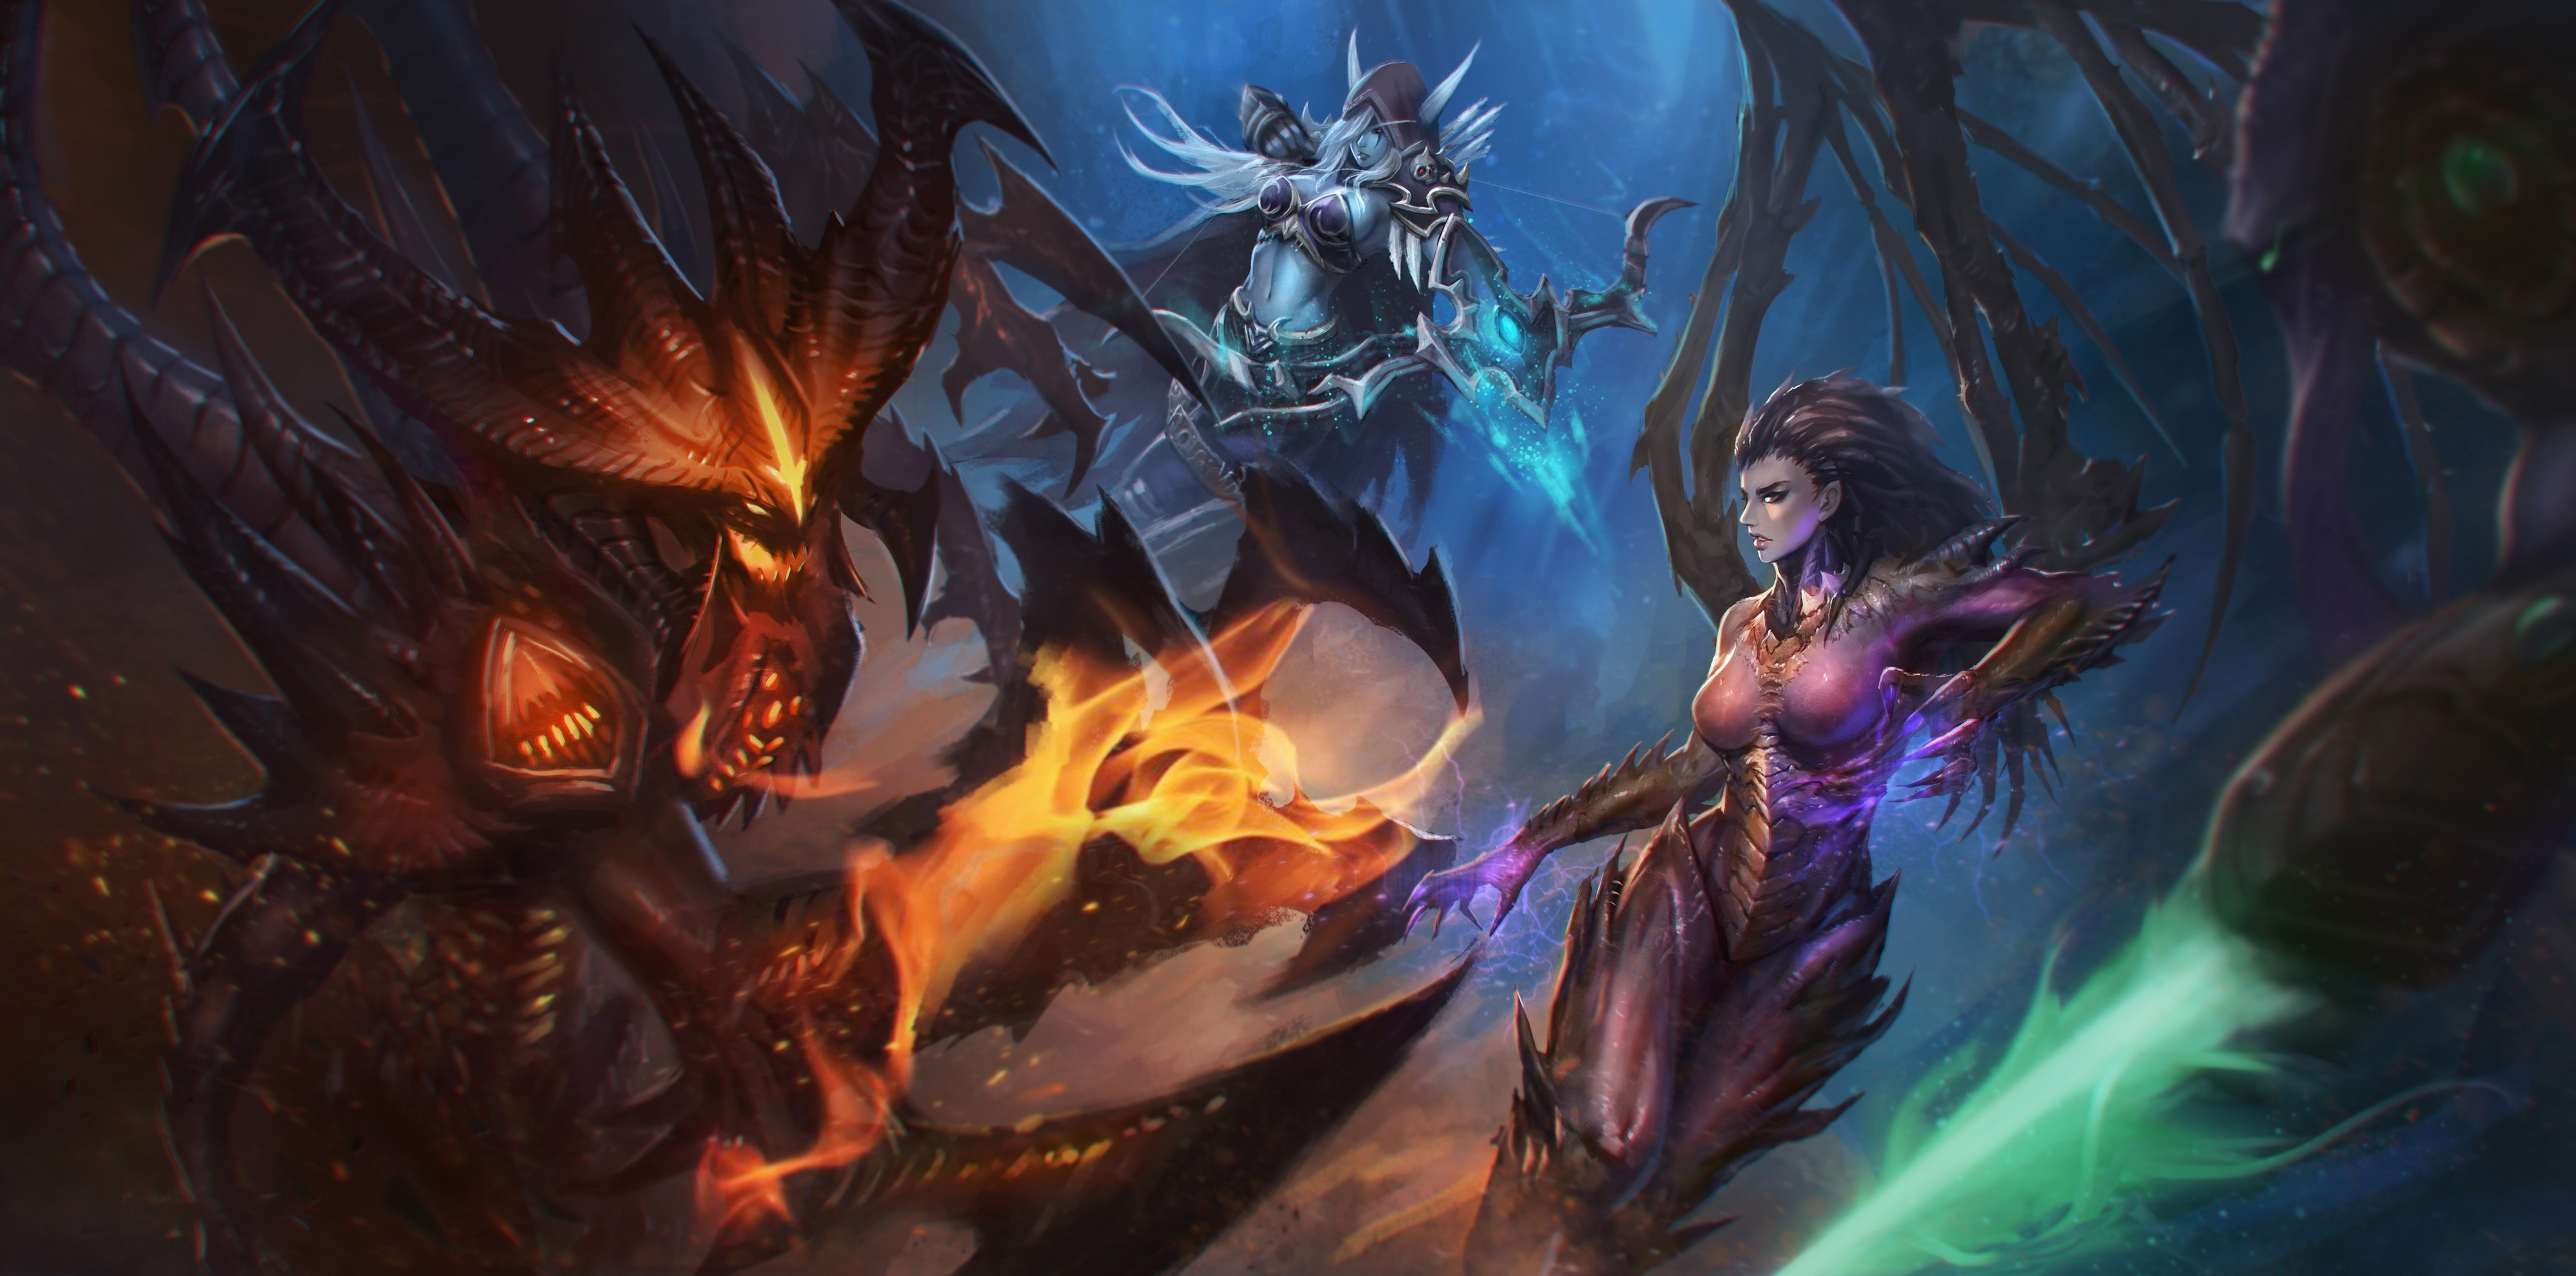 Wow Girls Wallpaper 1920x1080 Heroes Of The Storm Sylvanas Windrunner Contests Sarah